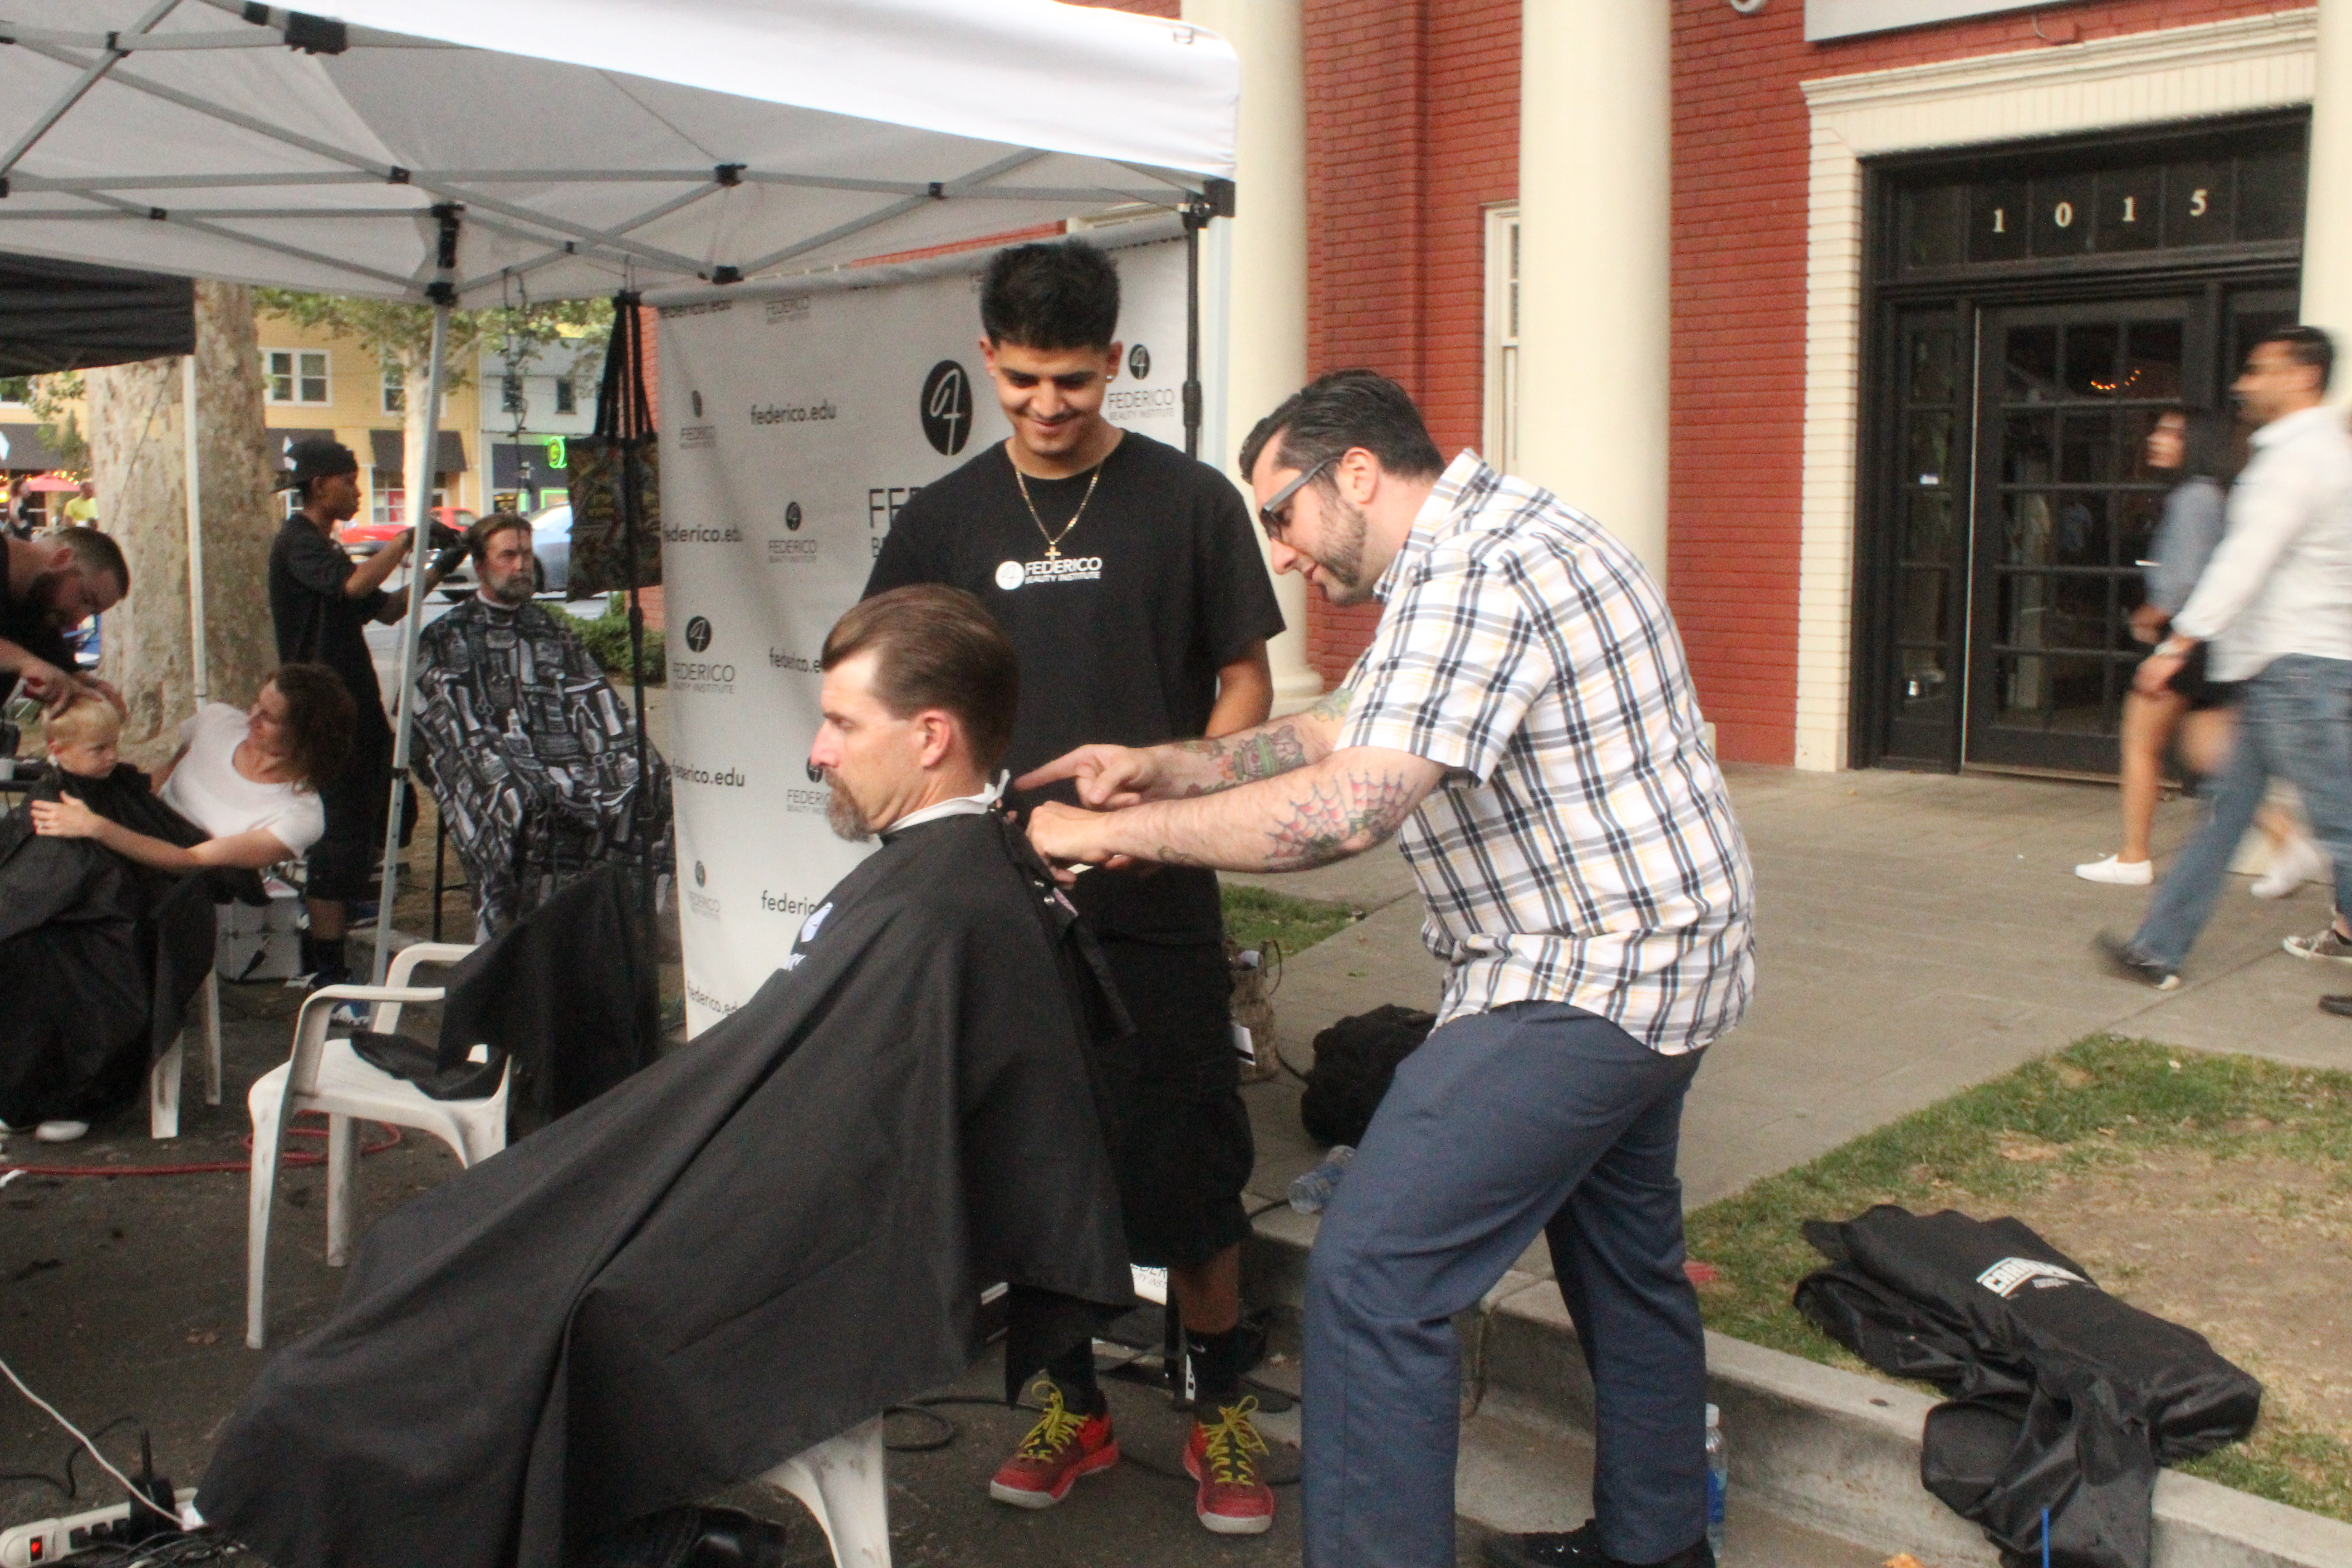 Barber instructor Zac cleaning up a line.